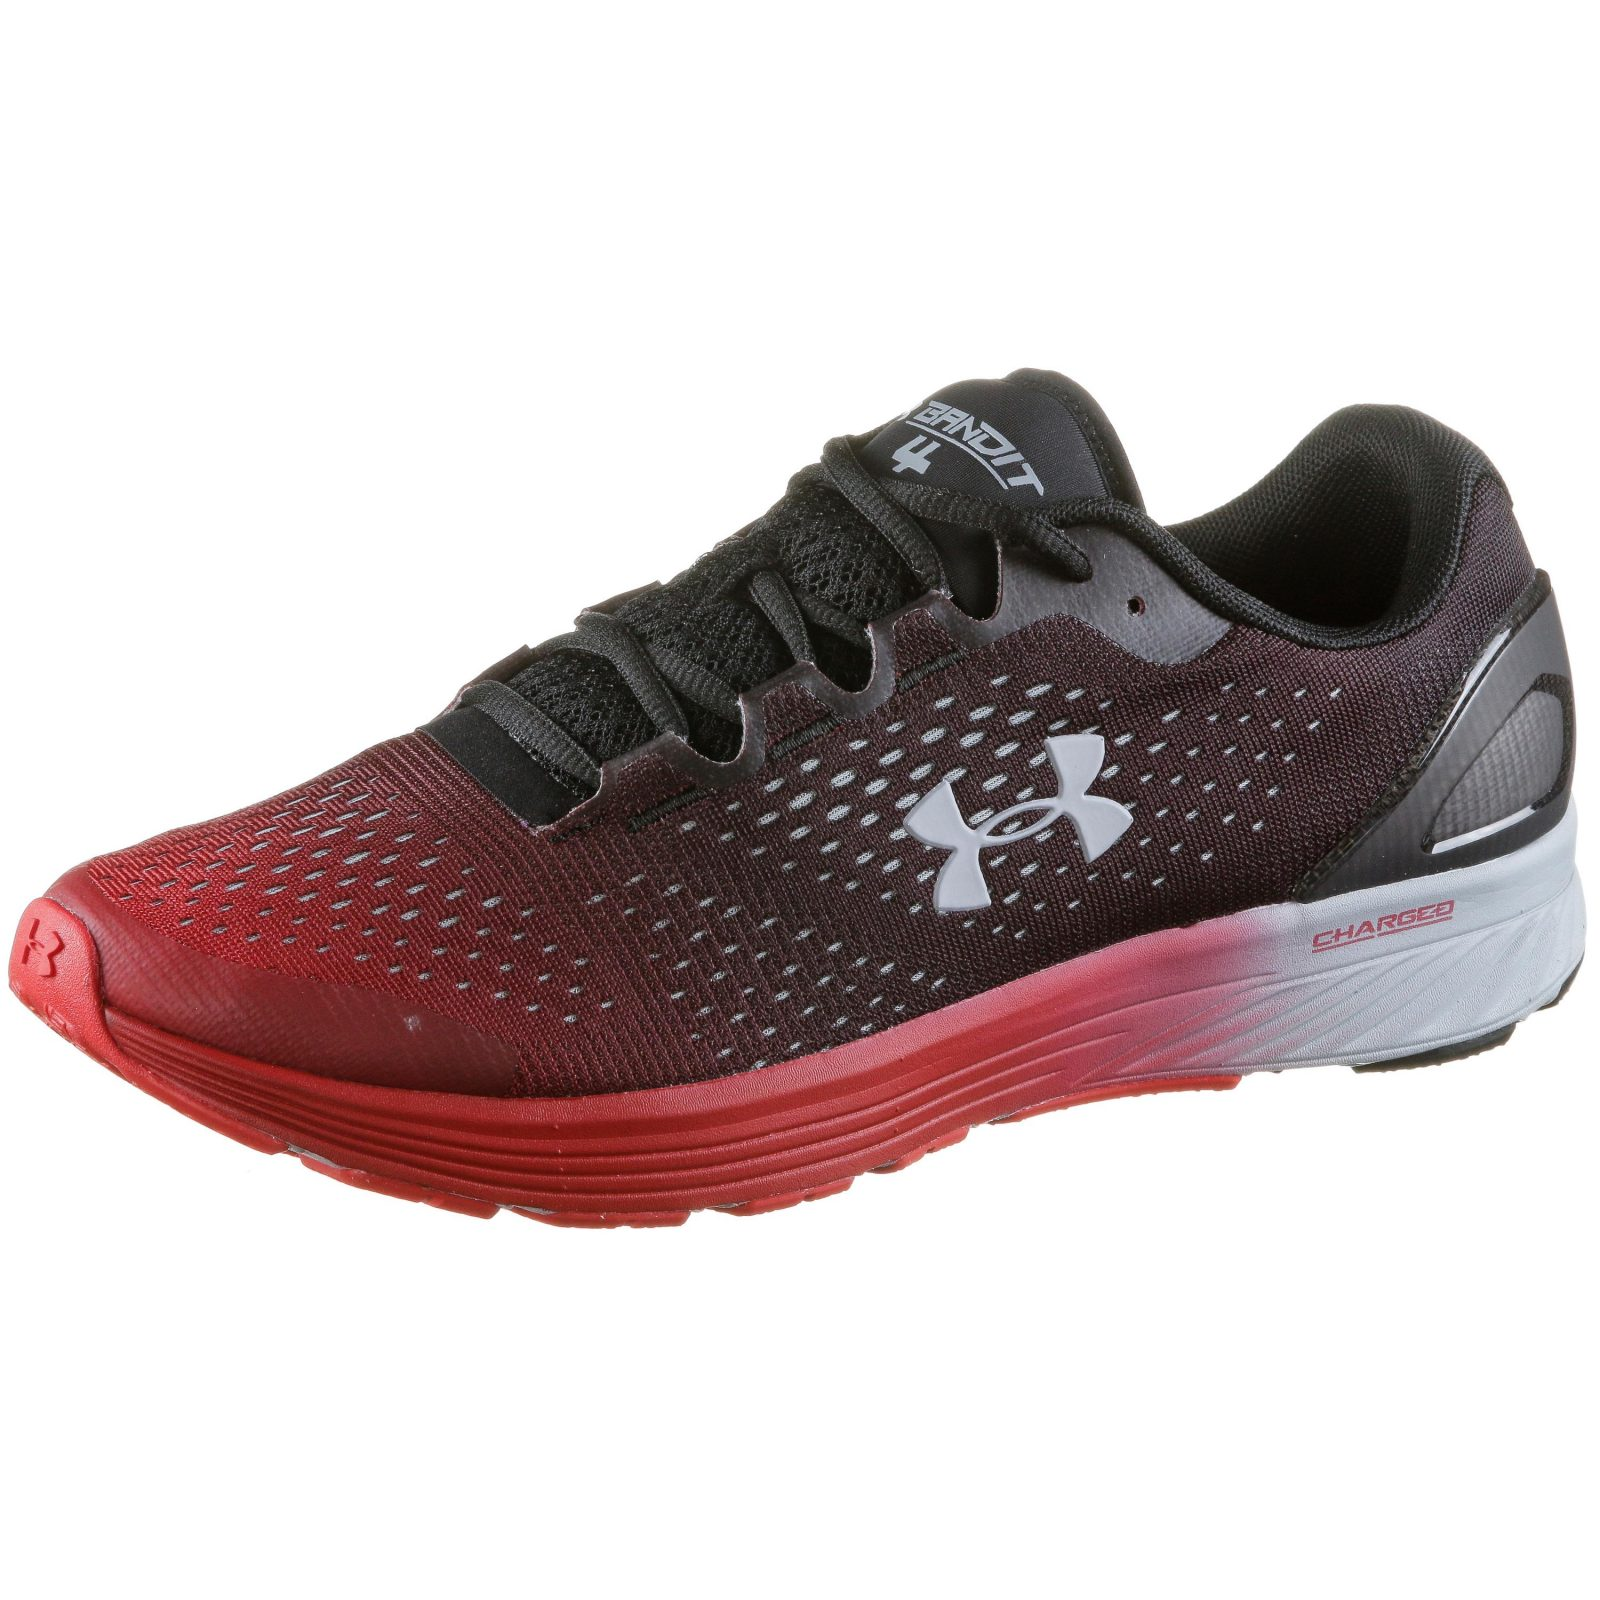 Under Armour Charged Bandit 3 Test Lauschuh